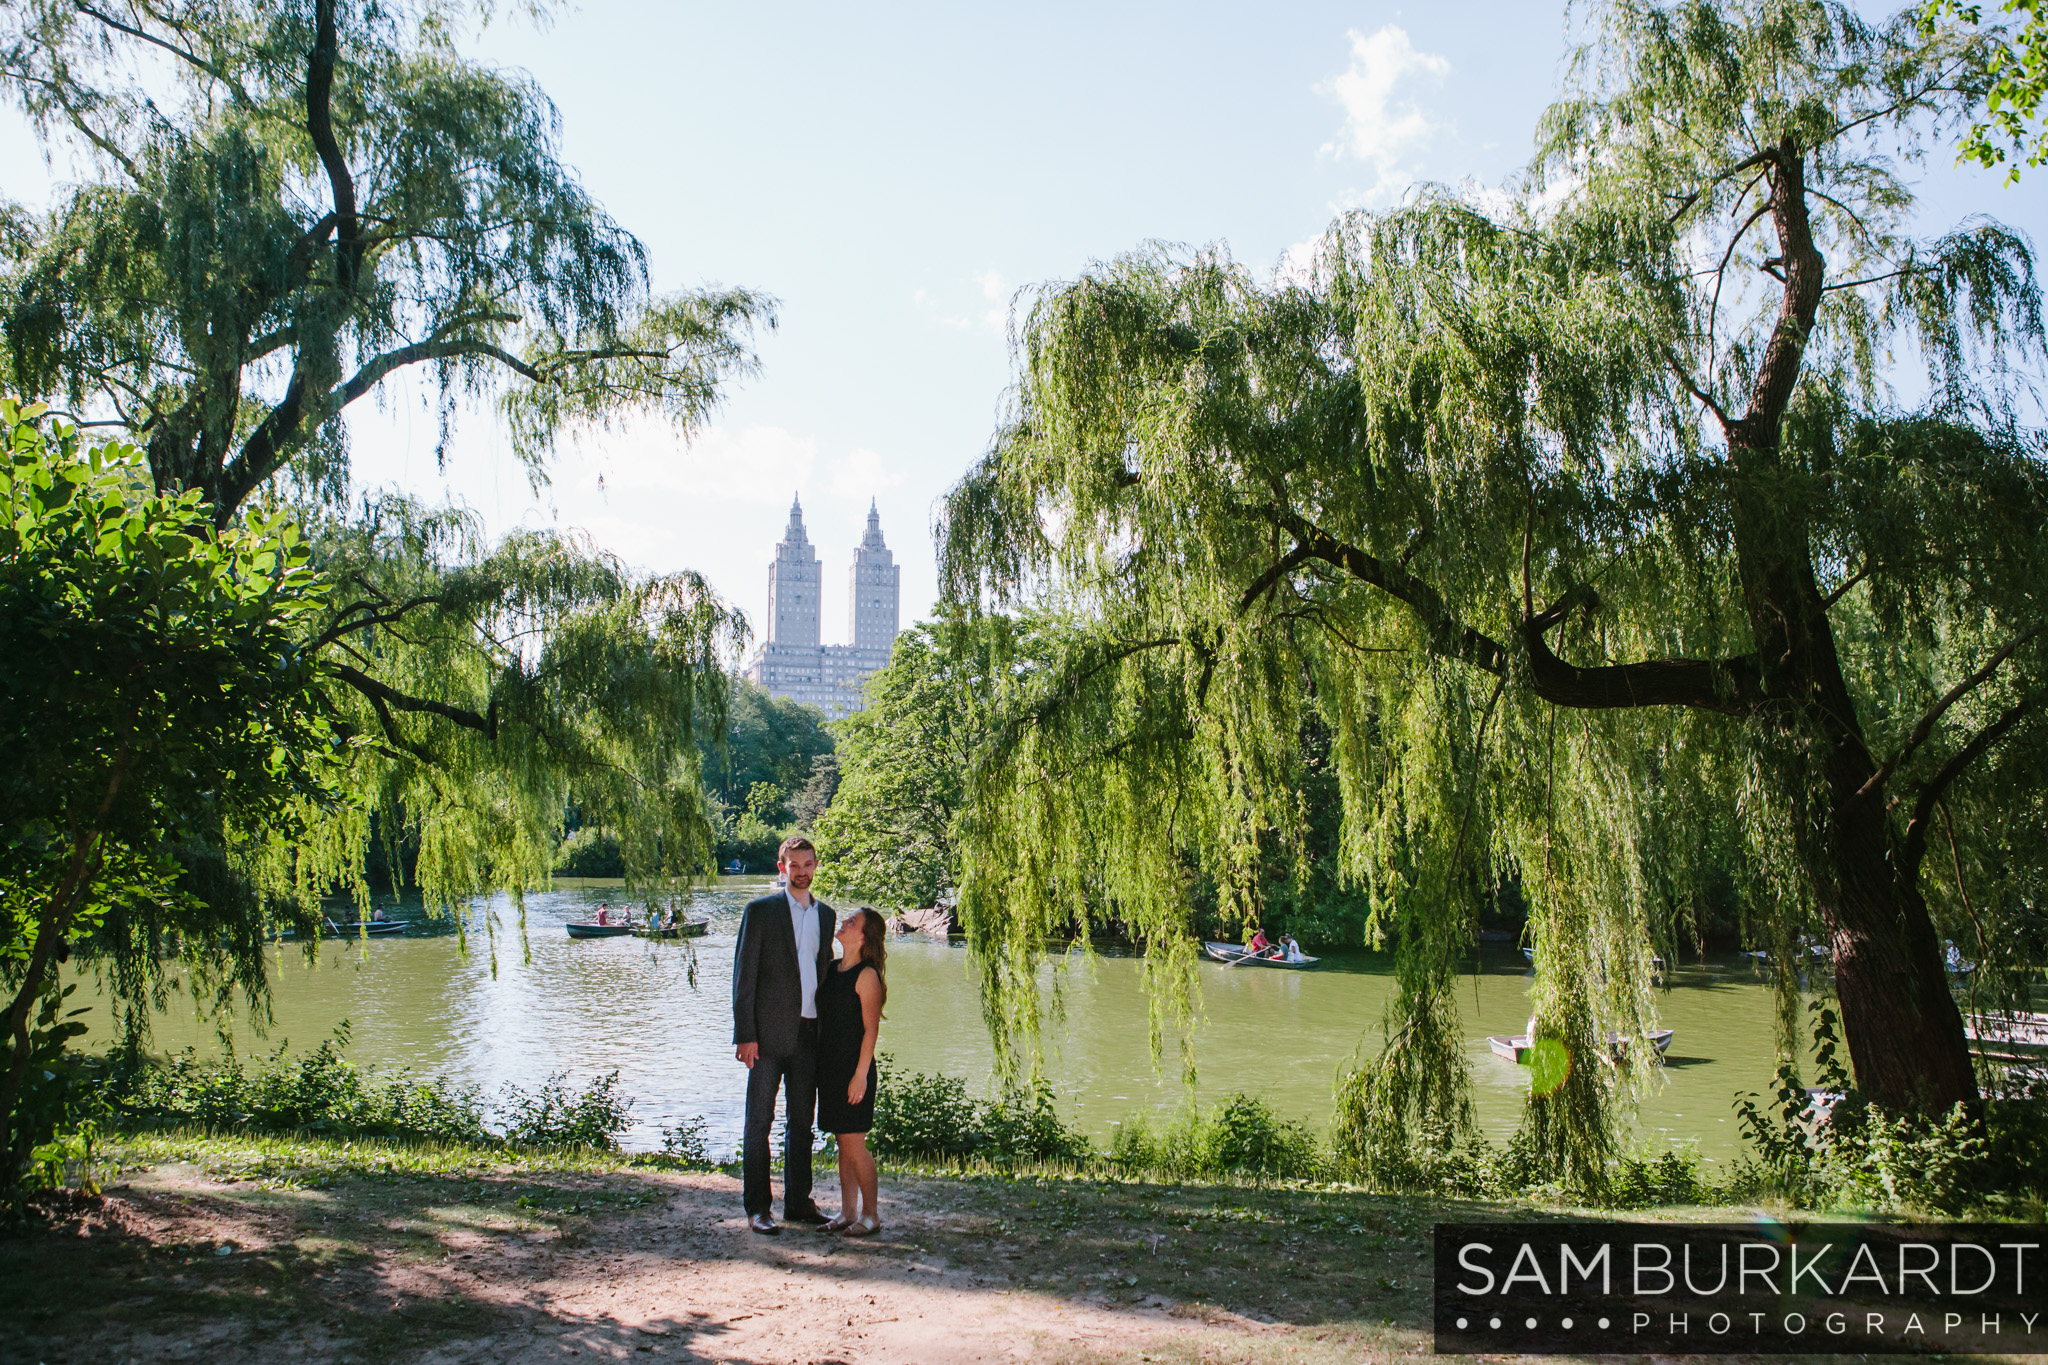 sburkardt_new_york_proposal_engagement_central_park_021.jpg